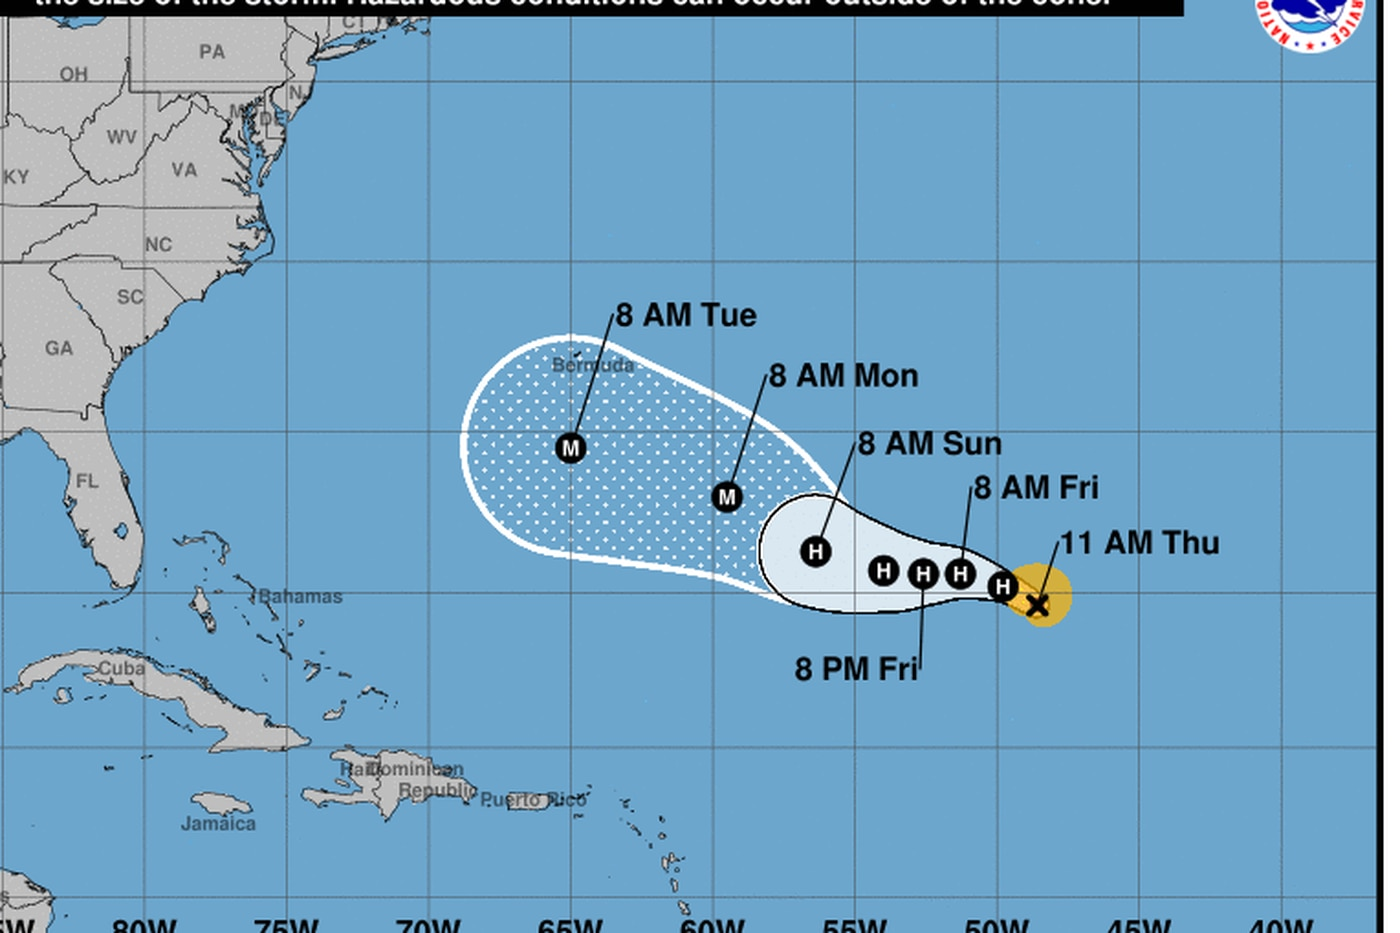 Storm watch - Monitoring the Atlantic